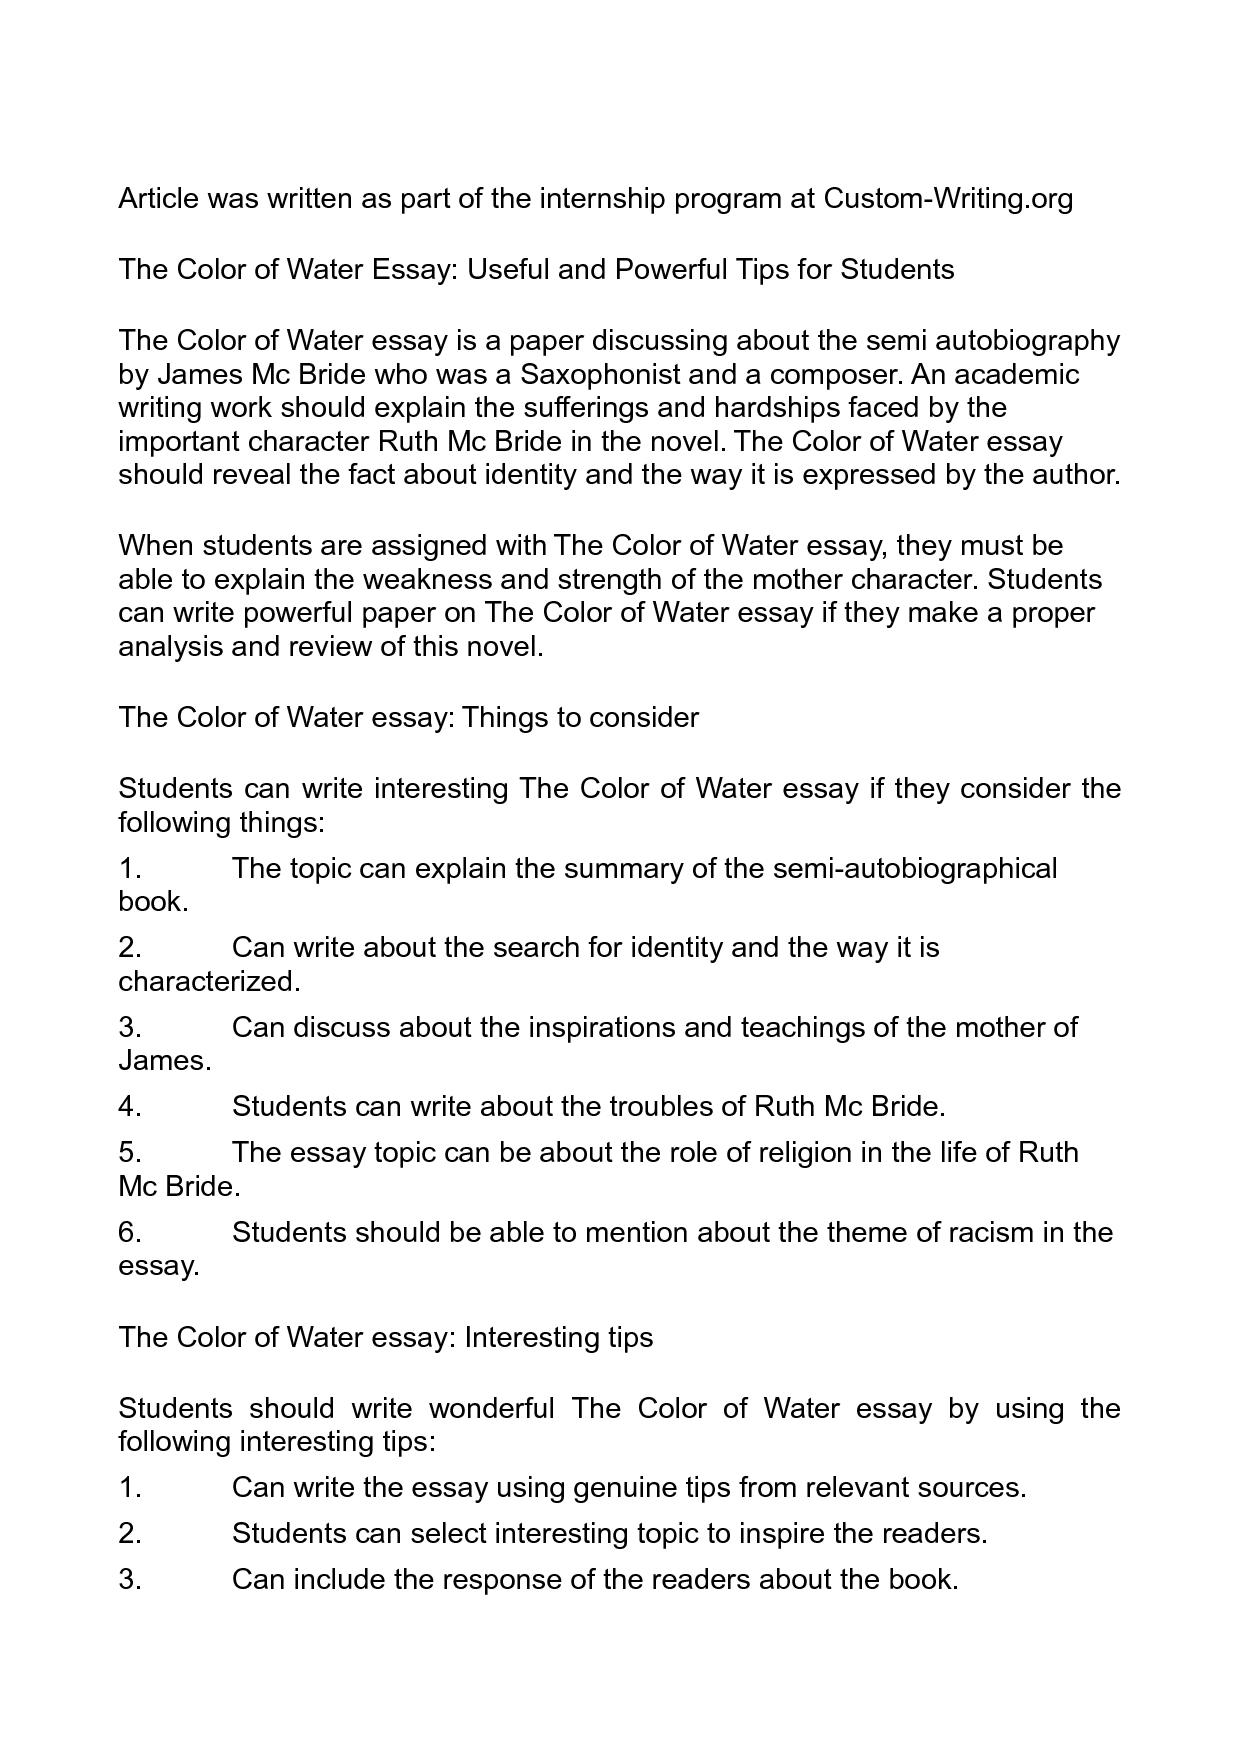 003 Essay About Water Pollution Of For Students Alt6b Incredible In Hindi Pdf Download Odia Kannada Full